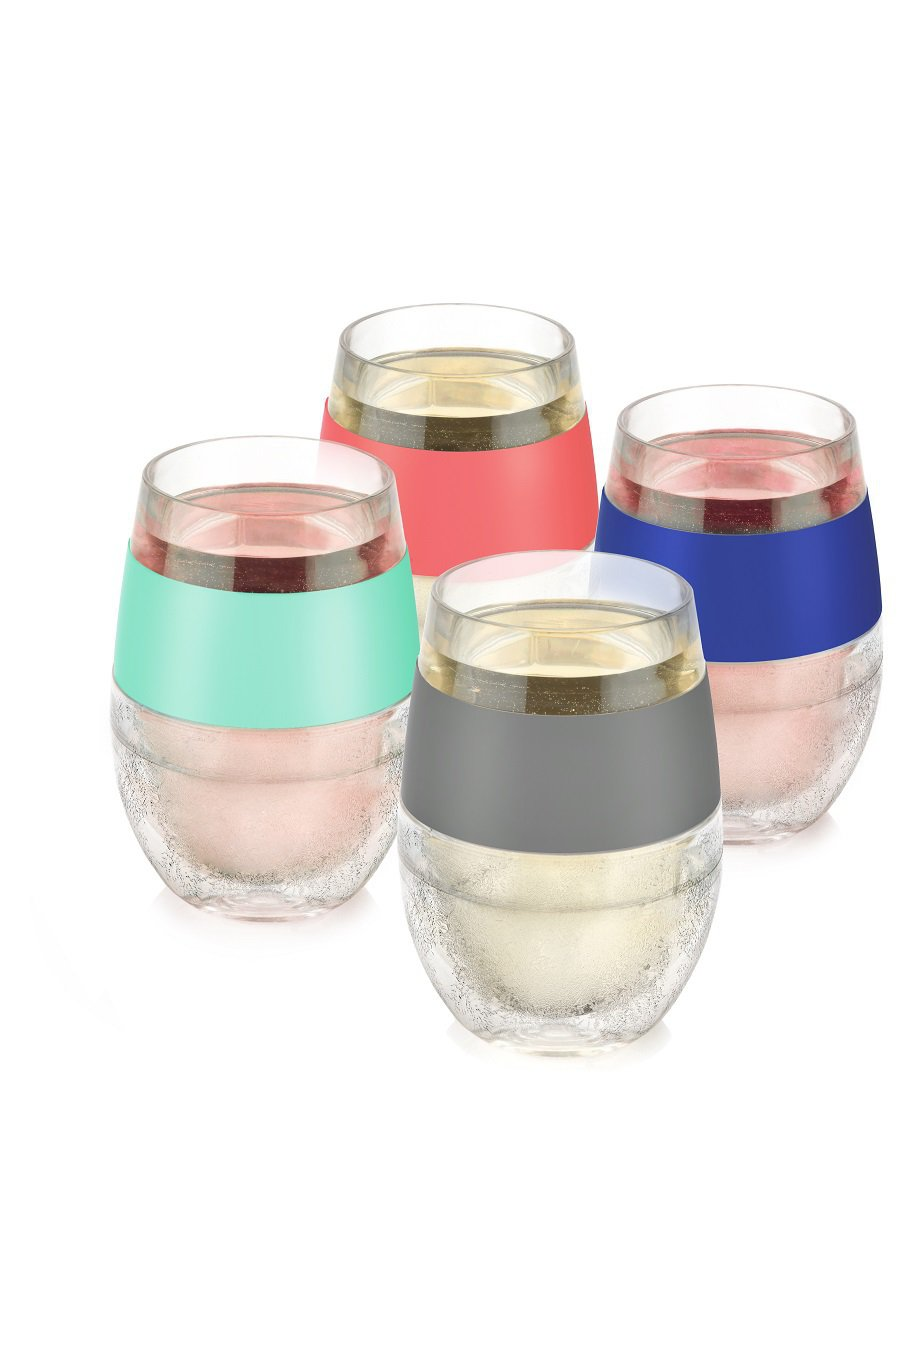 Wine FREEZE cooling cups will keep your reds and whites at the perfect drinking temperature for hours as you enjoy your wine. Cooling Wine Cups | Freezeable Wine Glass | Party Planning Ideas | Party Drink Ideas | Gifts for Wine Lovers | Wine Gifts for Her | Party Ideas #wine #gifts via @thebestoflife